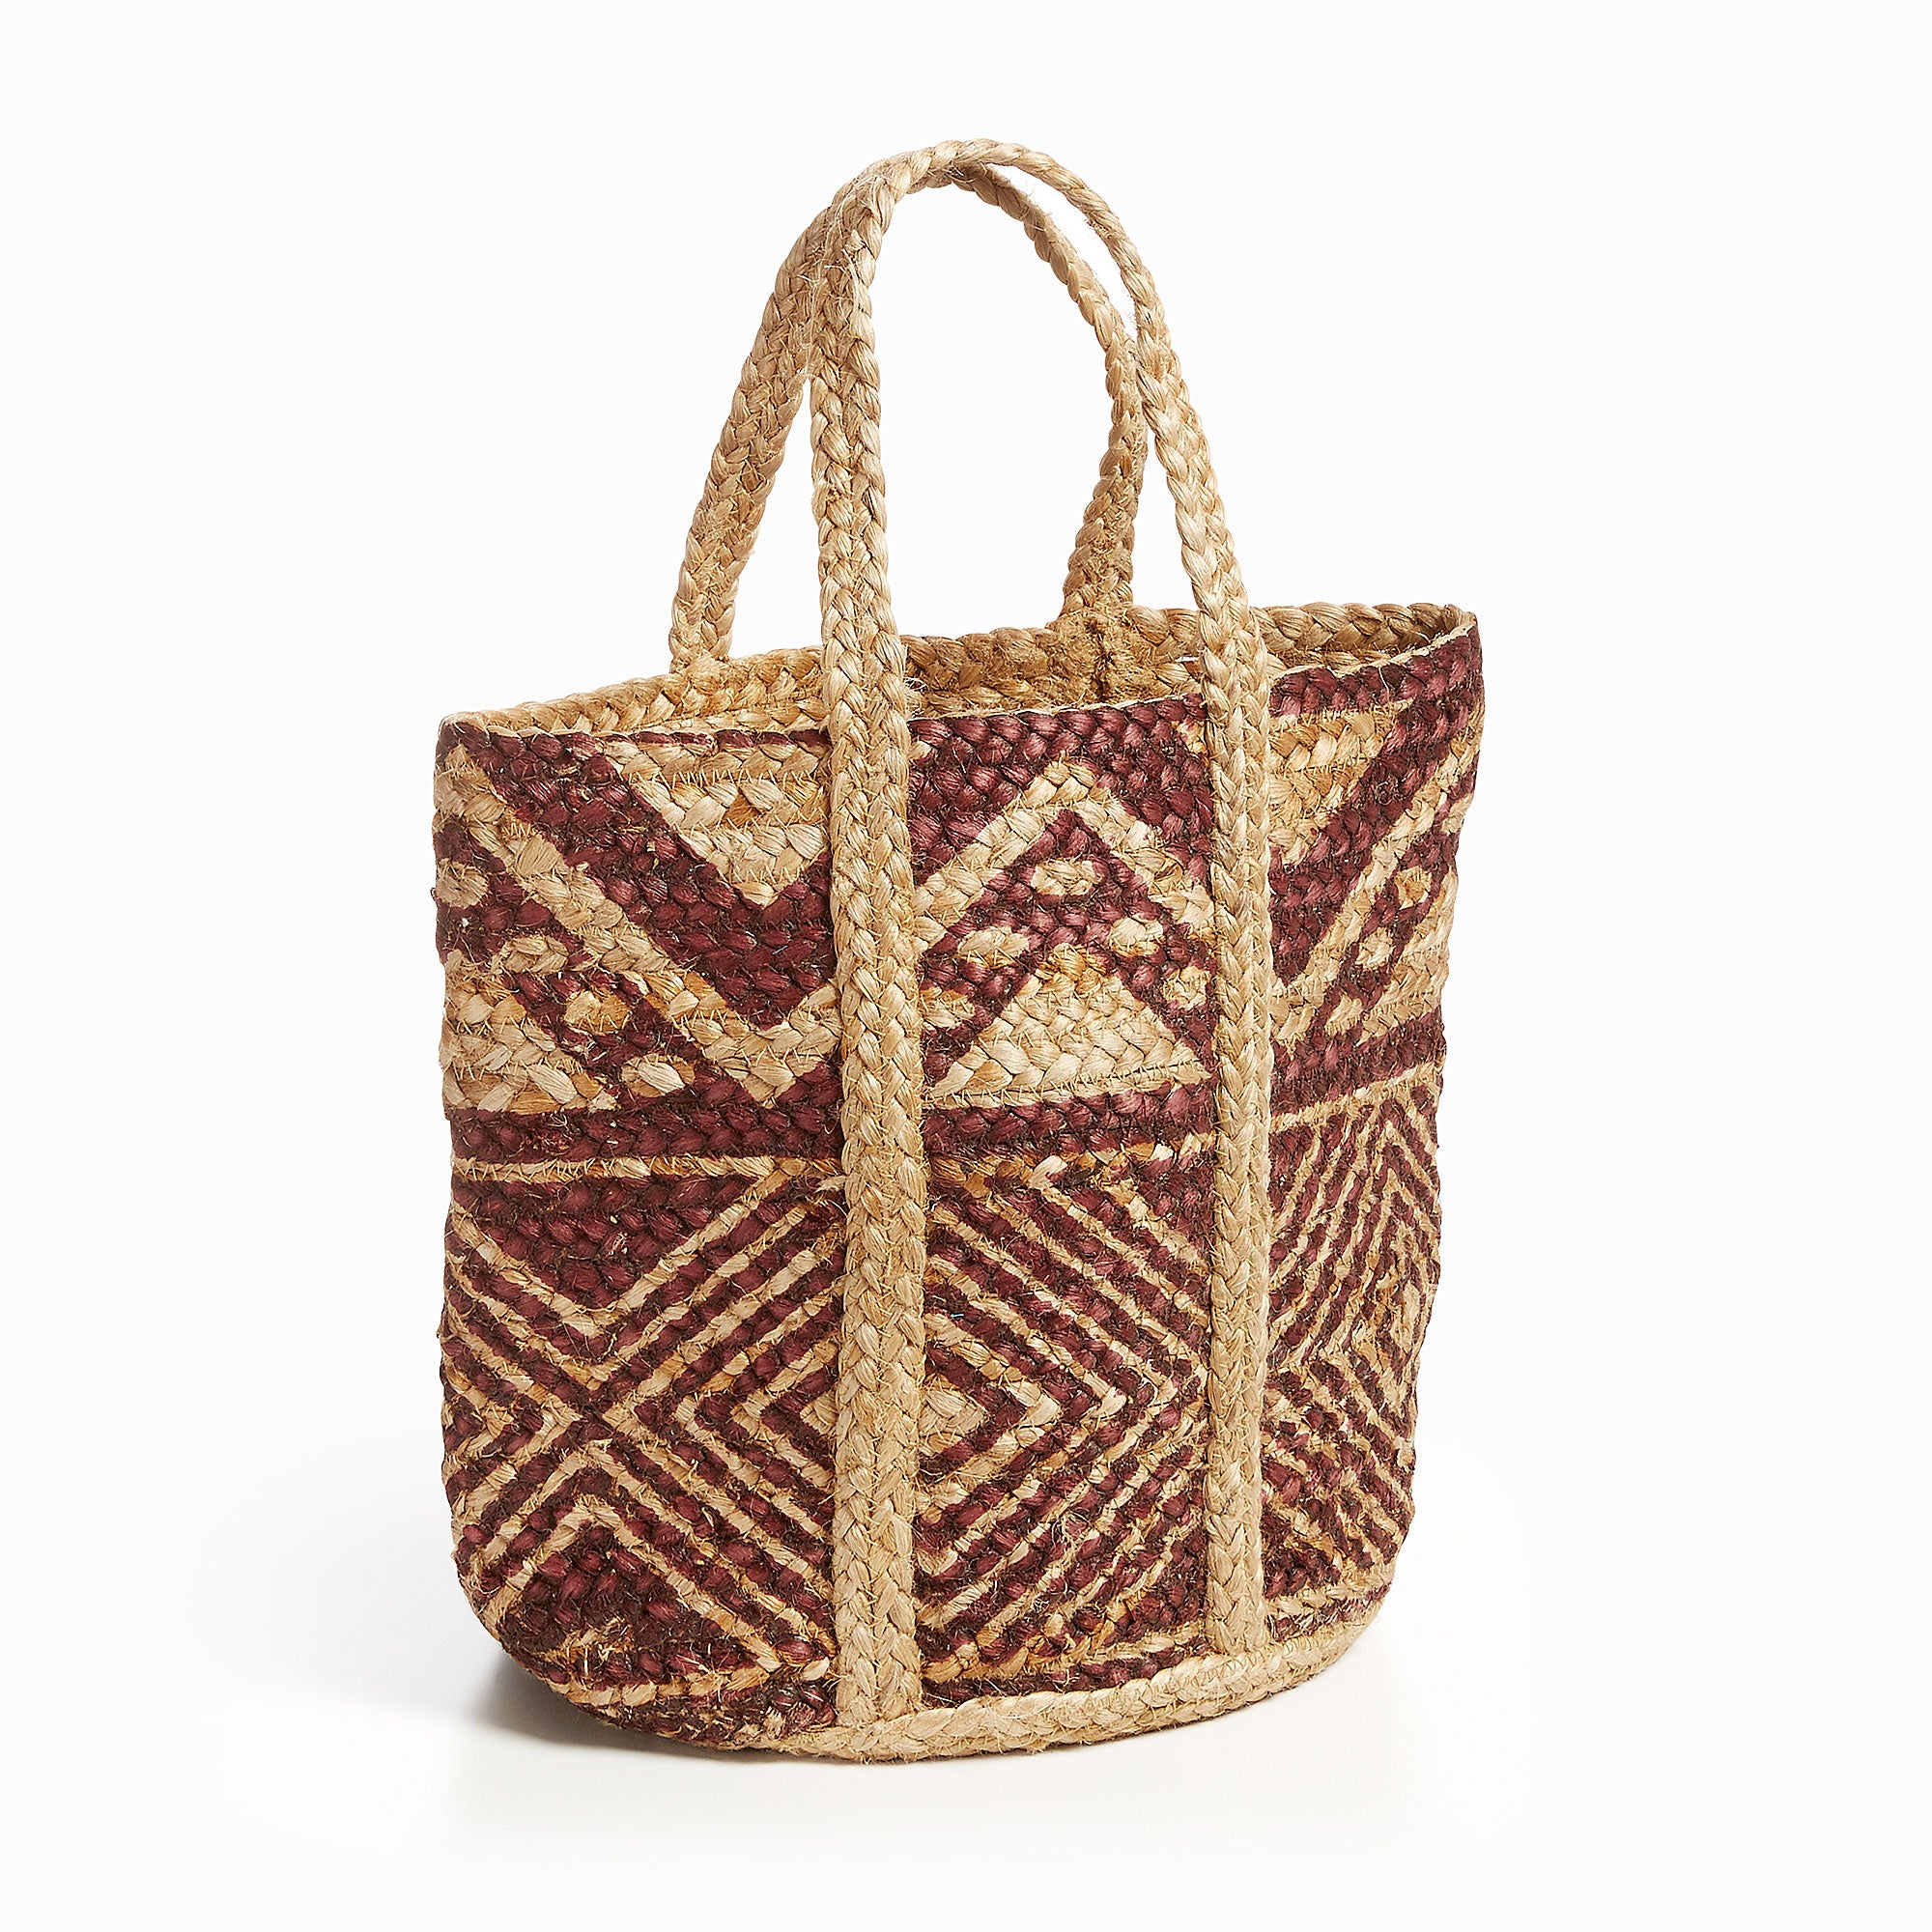 Sandy Basket - Basket with Handles and a Printed Burgundy Geometric Pattern - Home-Buy Interiors